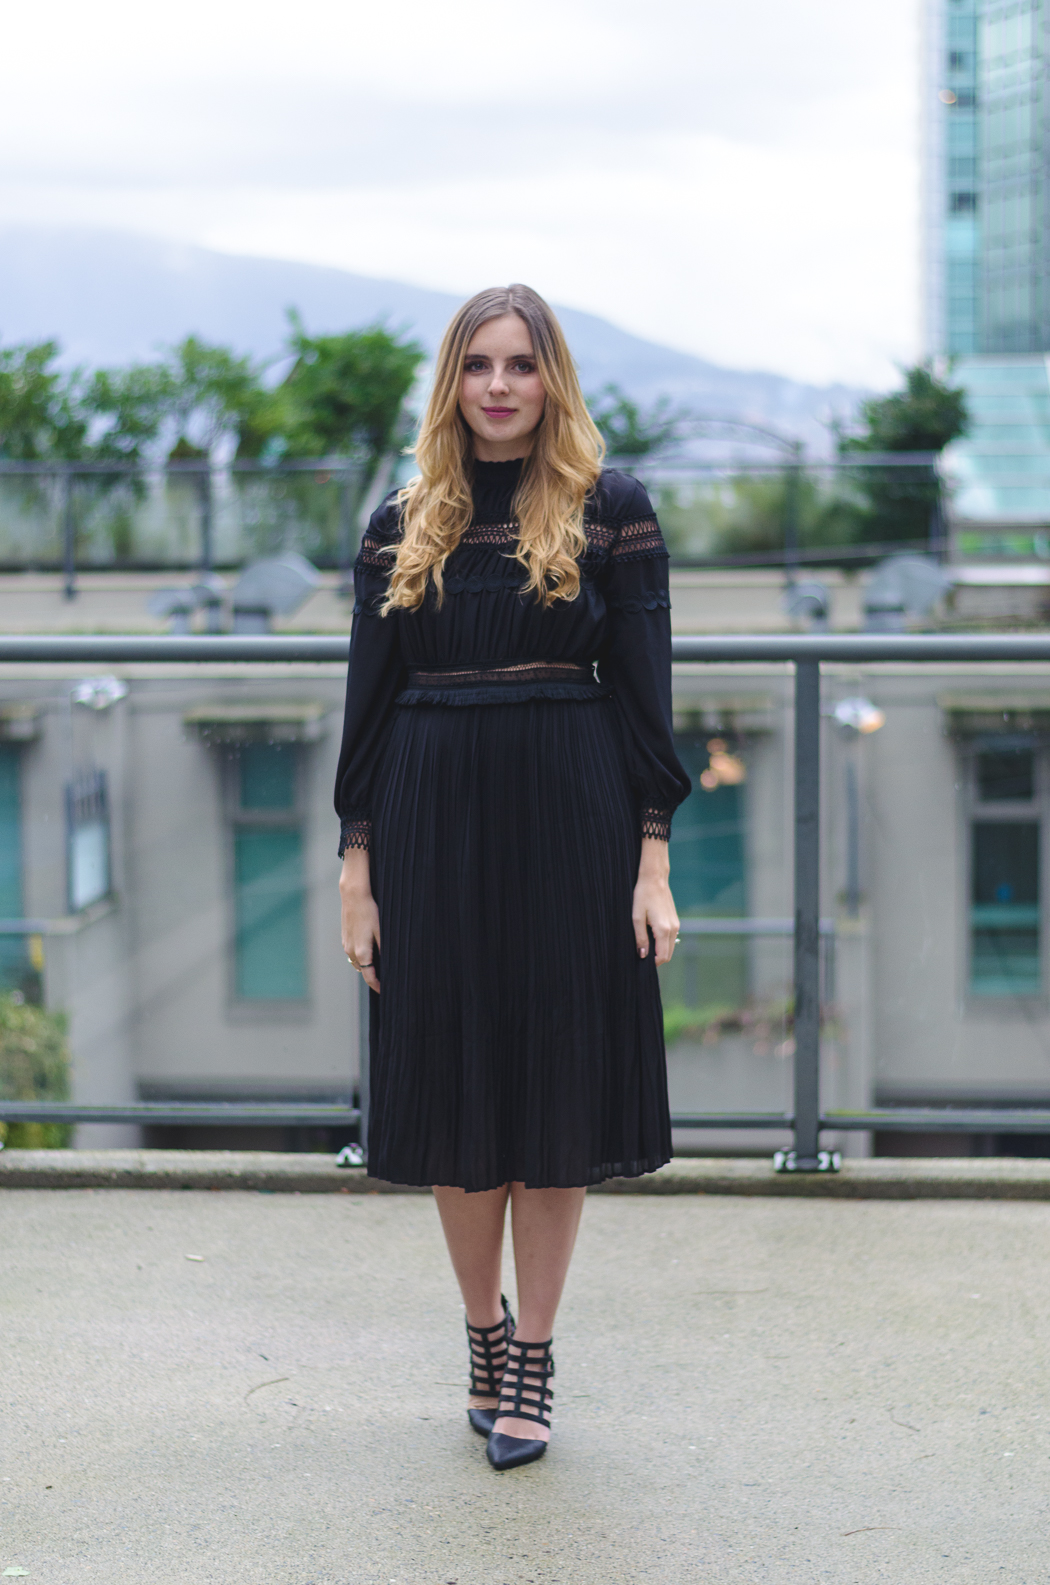 96af50a6c77c How to Wear a Midi Dress Stylishly